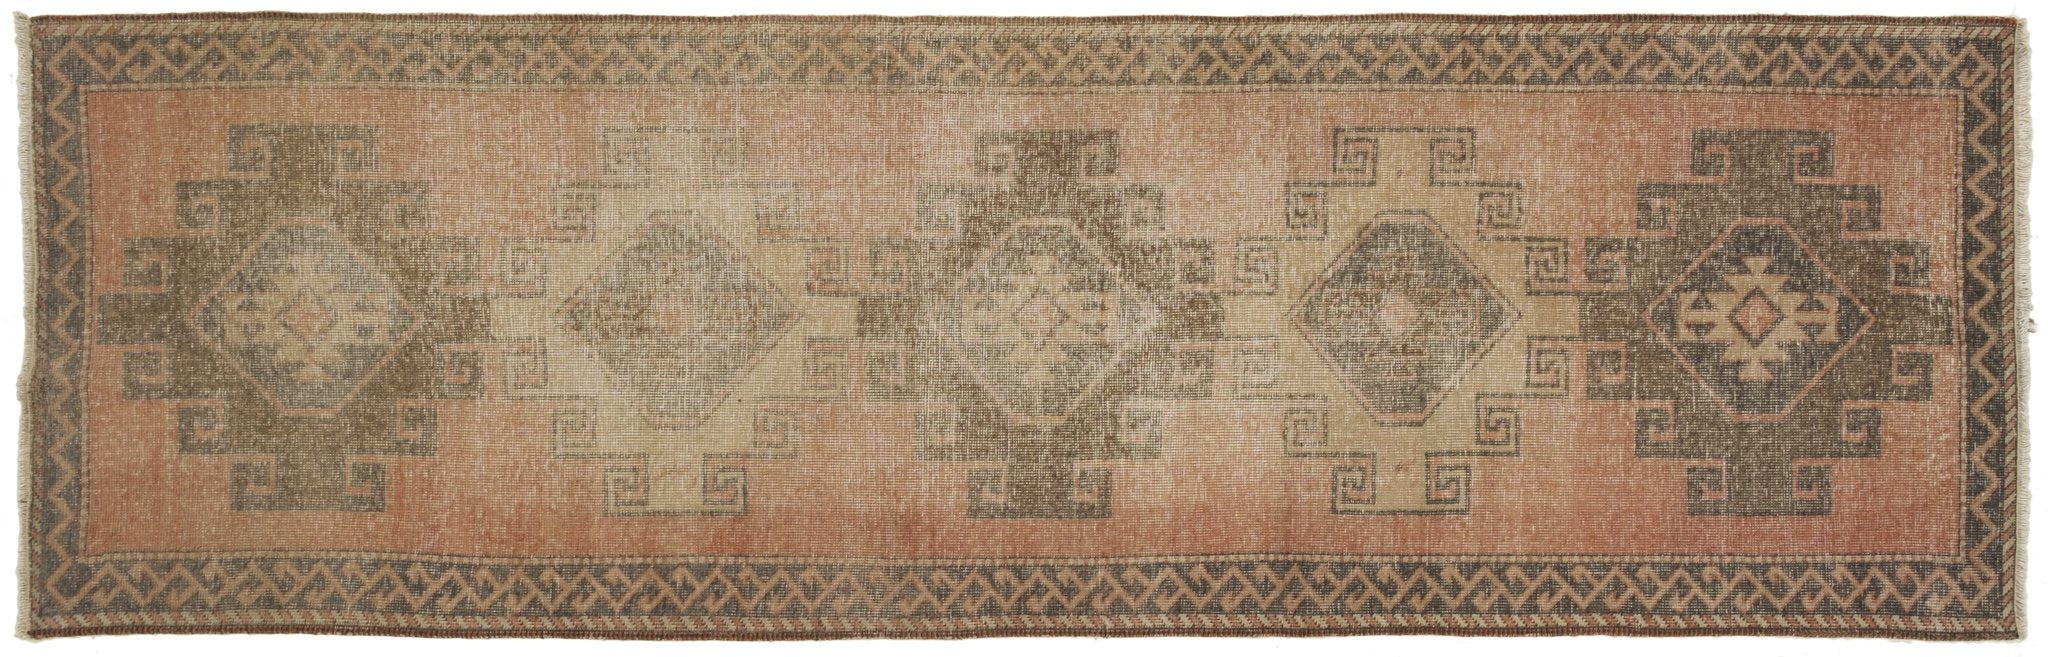 Vintage Turkish Runner Rug Costan